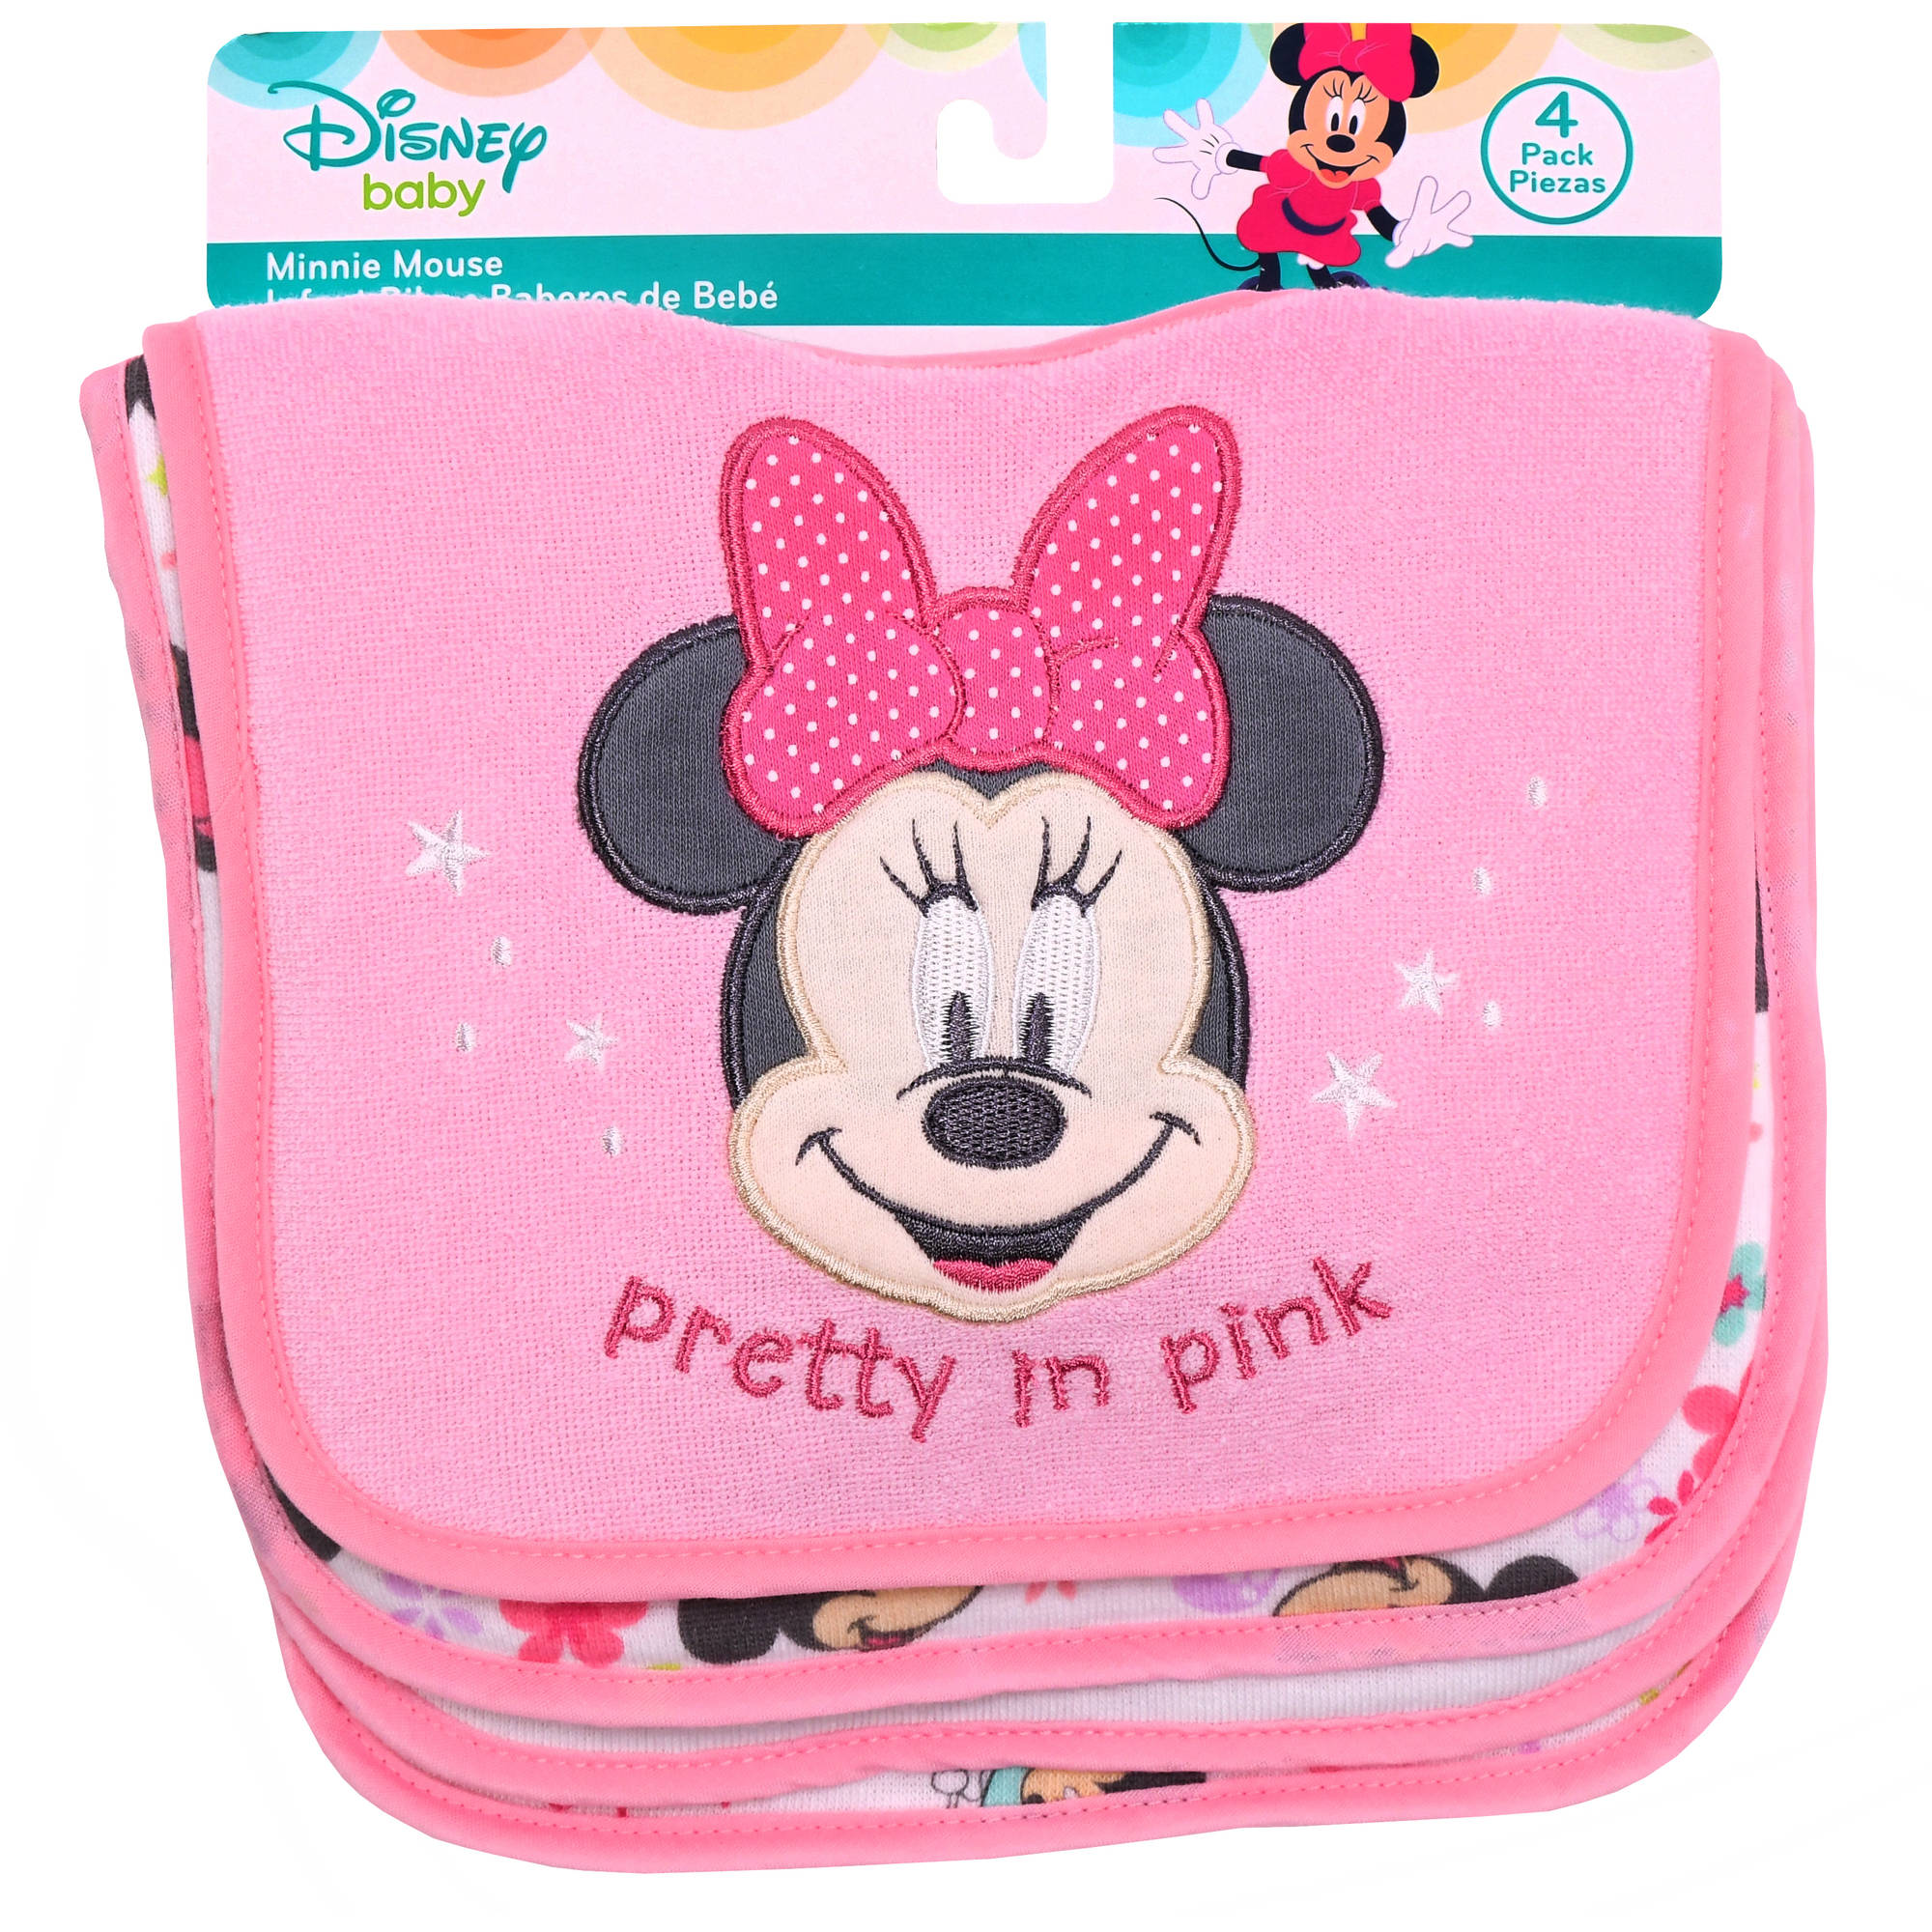 Disney Minnie Mouse Infant Bibs, Pack of 4